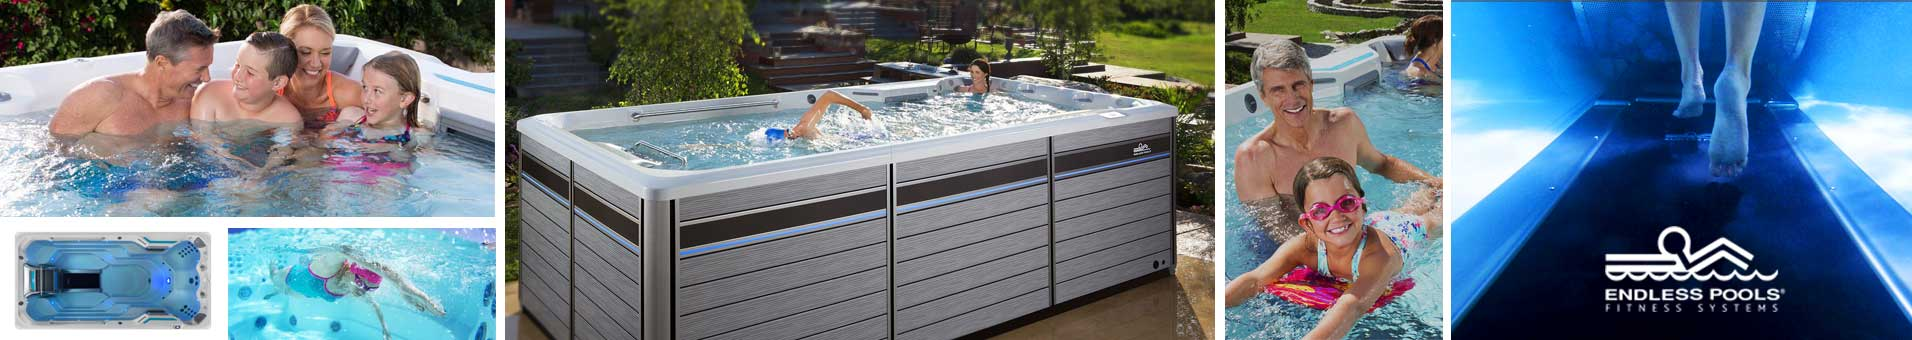 Collage of photos showcasing Endless Pools Fitness Systems available at The Recreational Warehouse Southwest Florida's Leading Warehouse for Spas, Hot Tubs, Pool Heaters, Pool Supplies, Outdoor Kitchens and more!